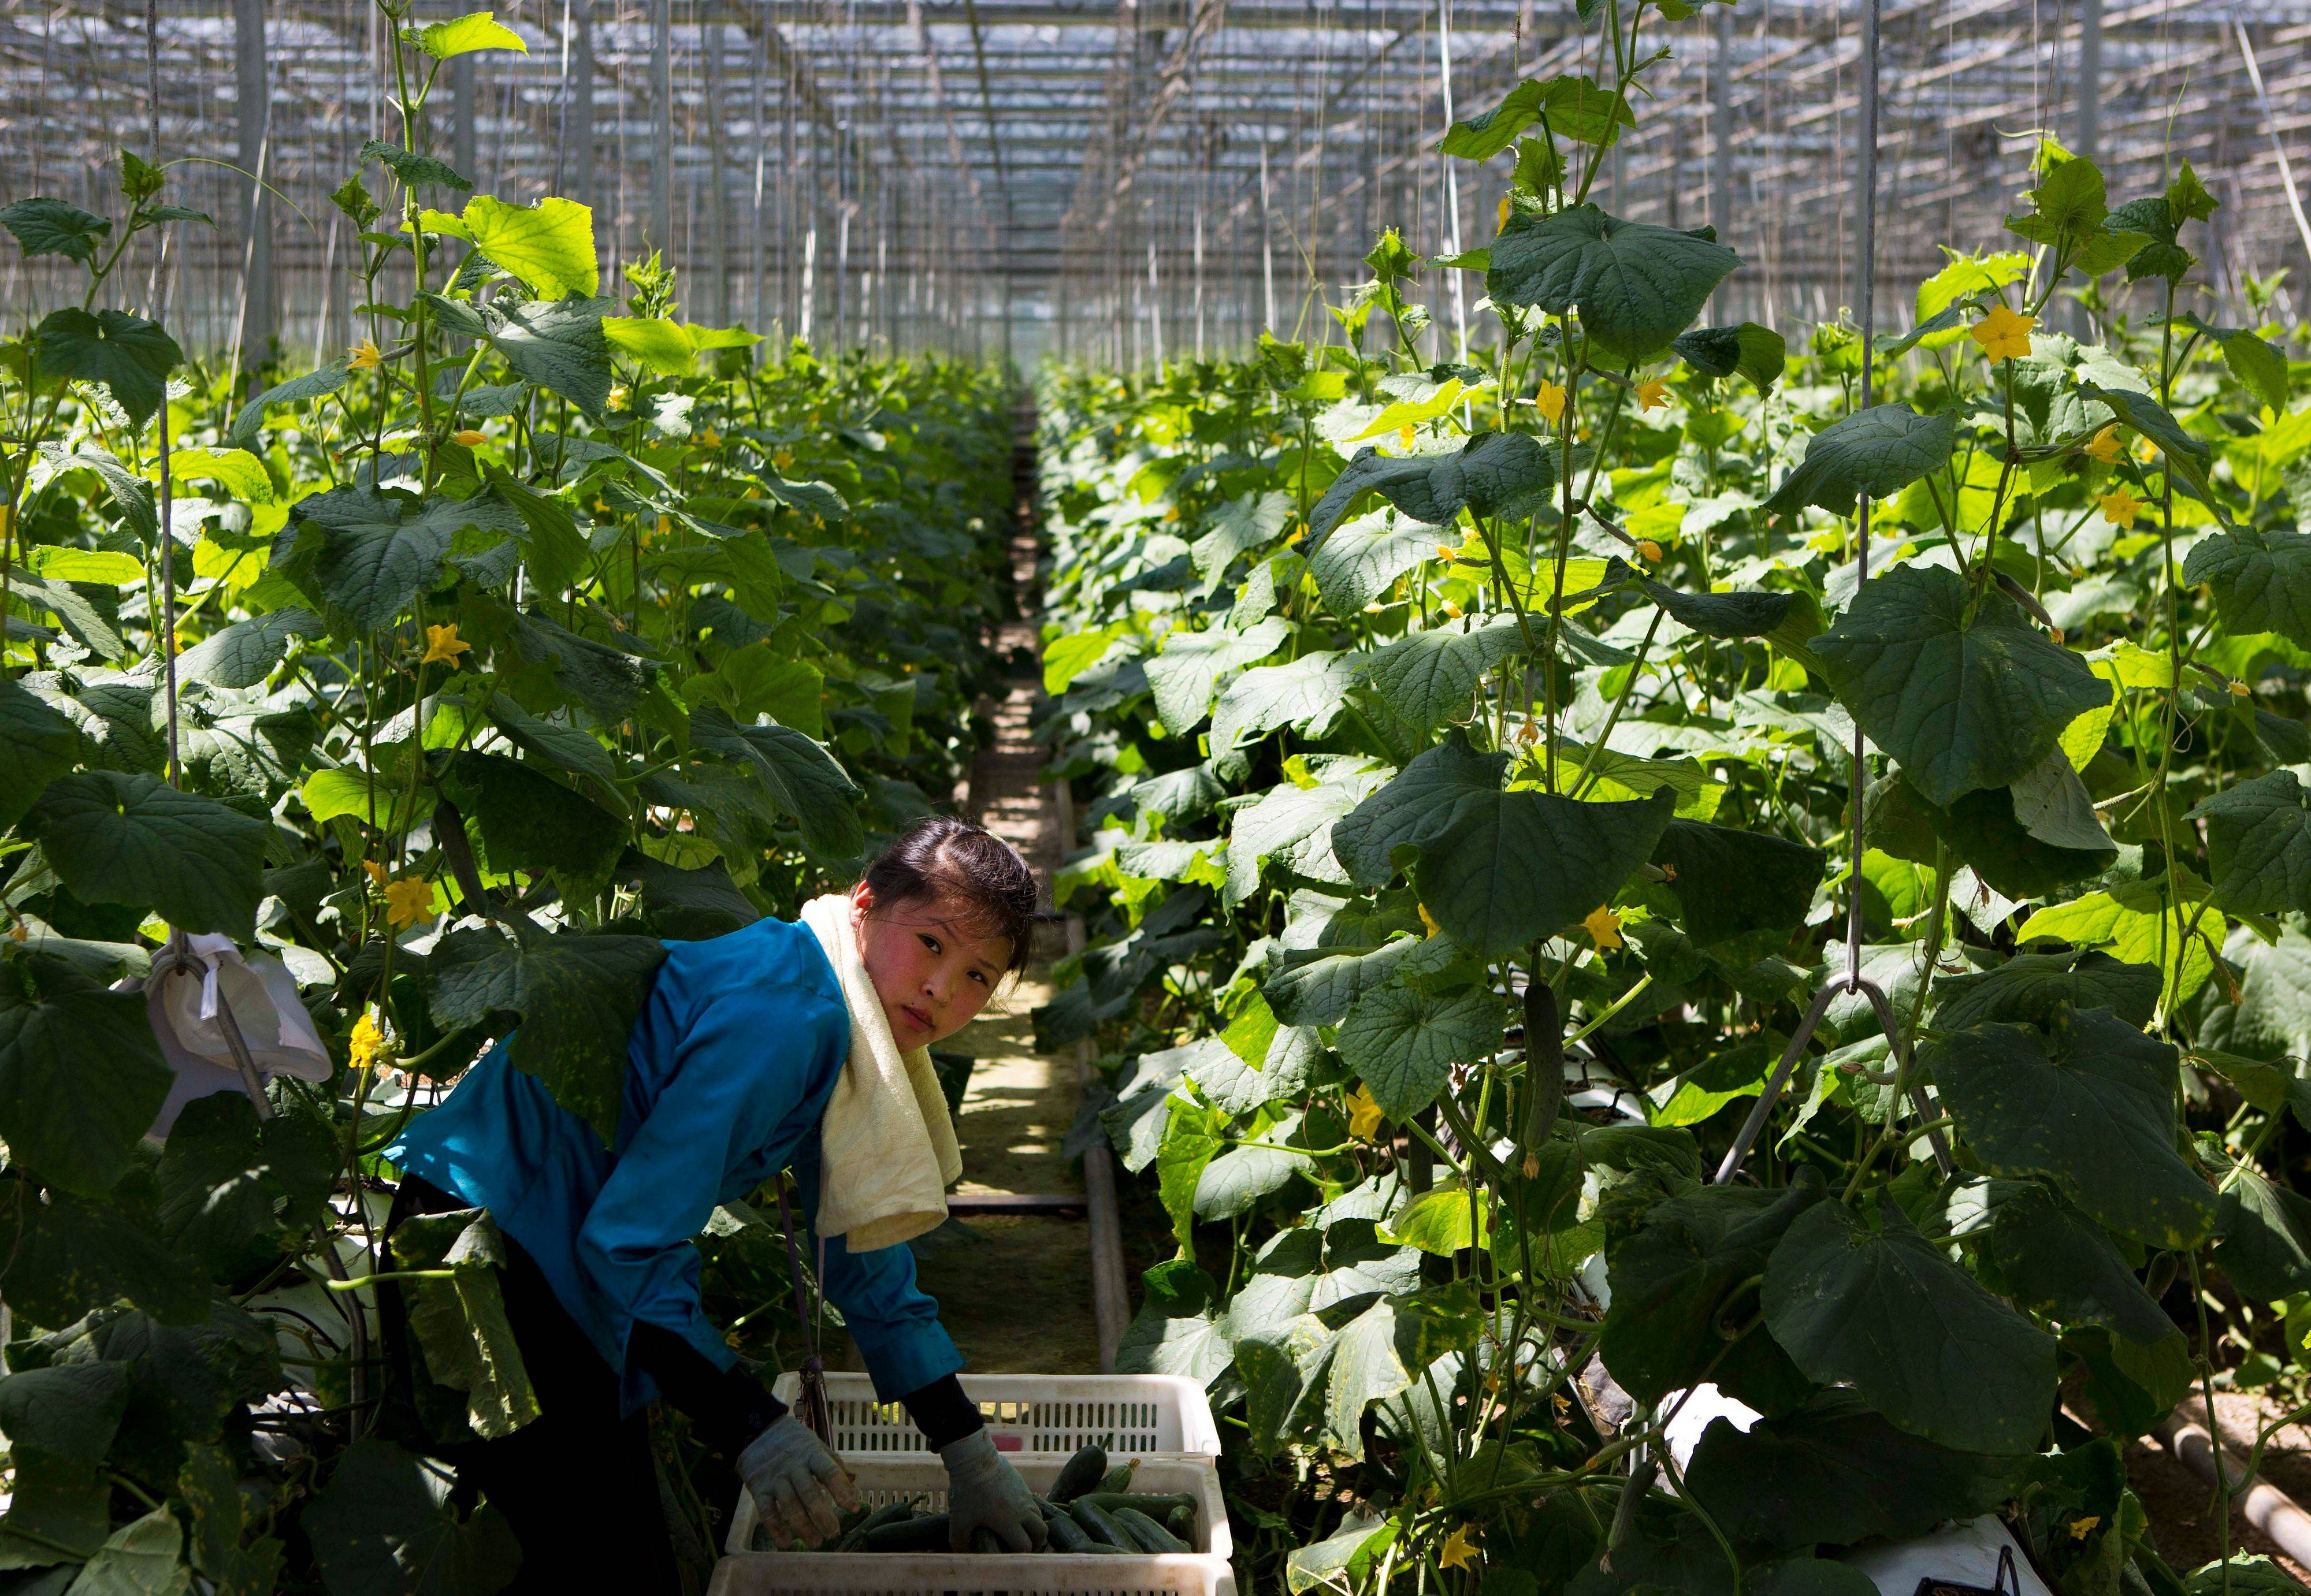 A North Korean woman works in a vegetable greenhouse on the outskirts of Pyongyang.